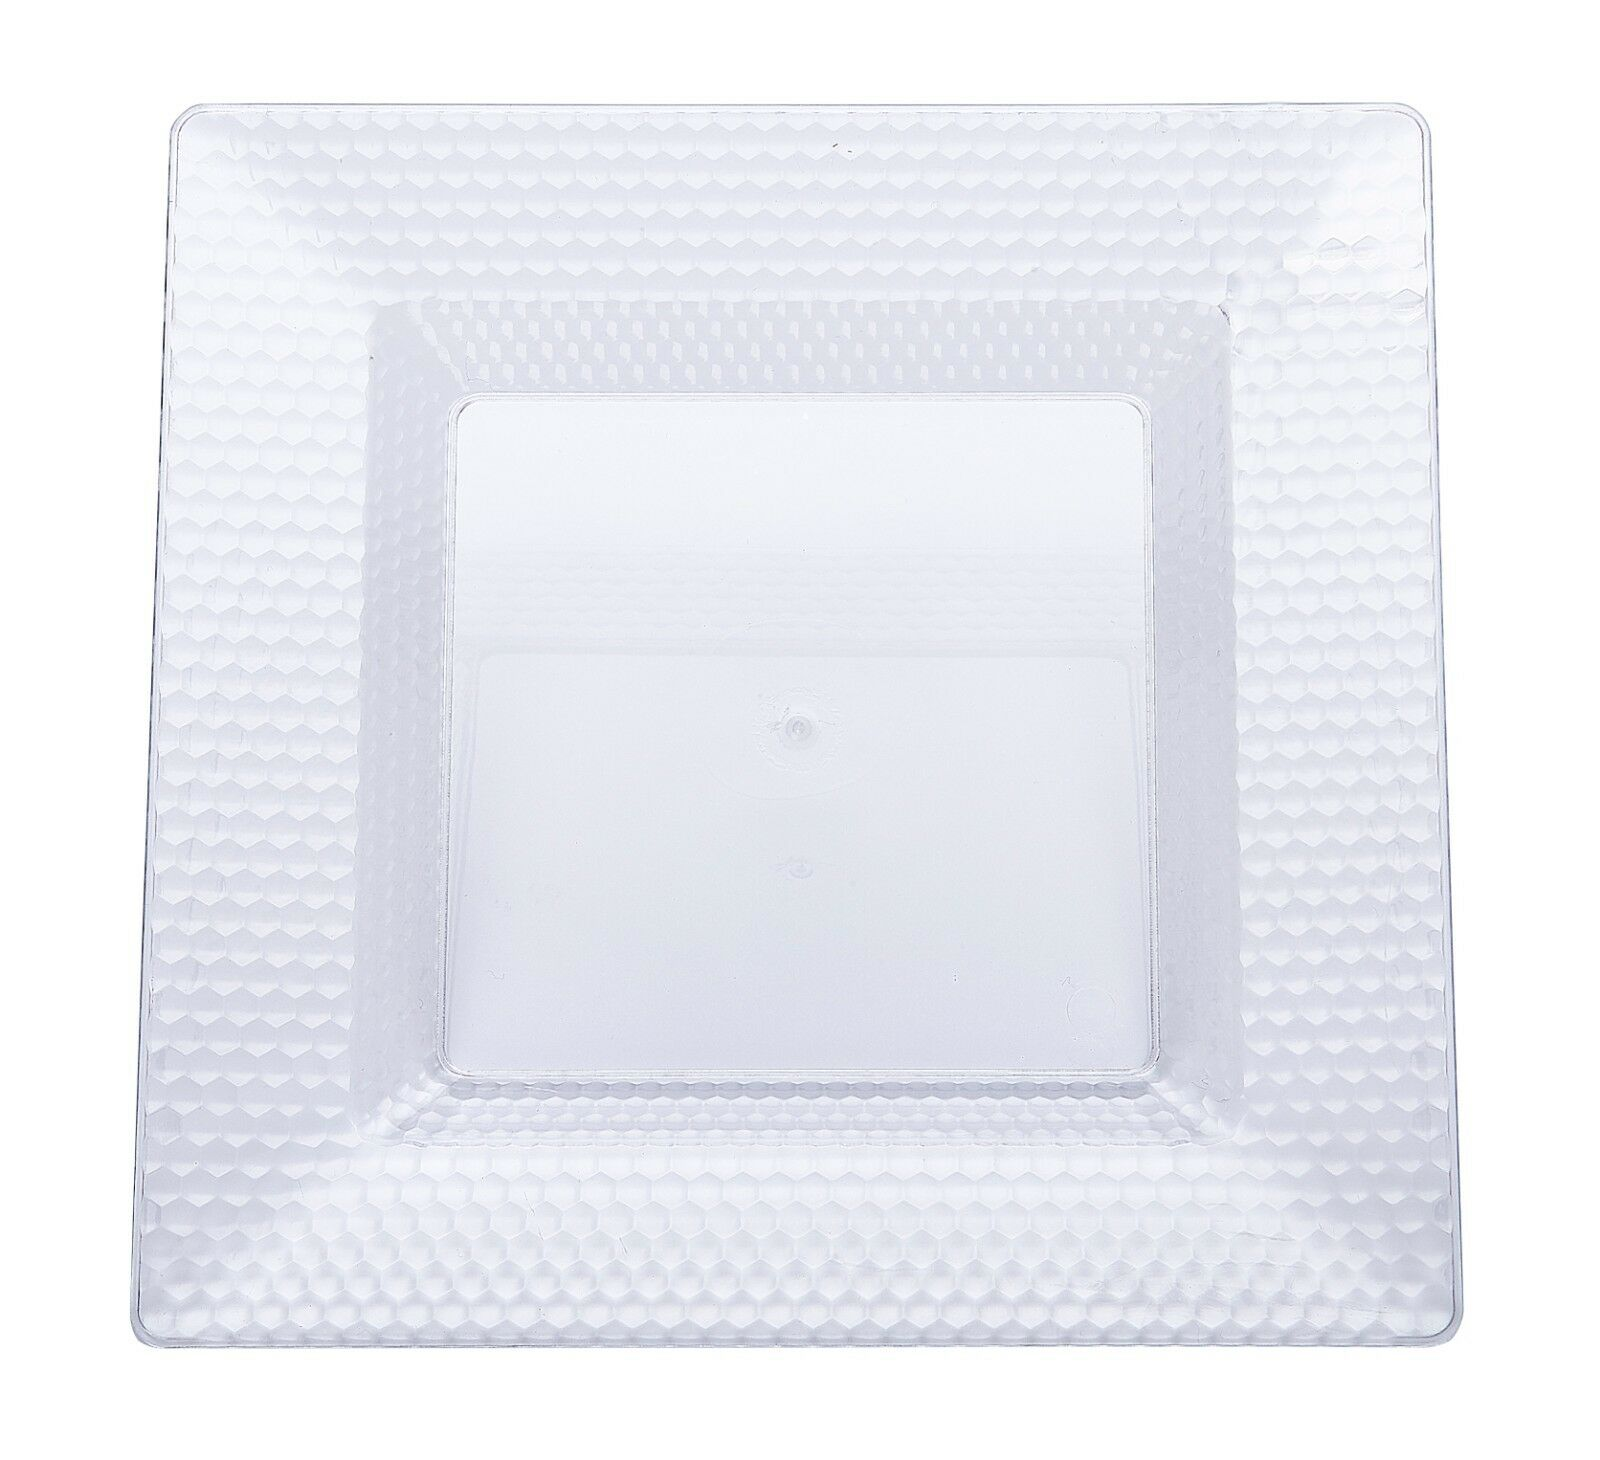 120 x 8 inches Clear Square Quality Diamond Design Plastic Side Plates - Wedding